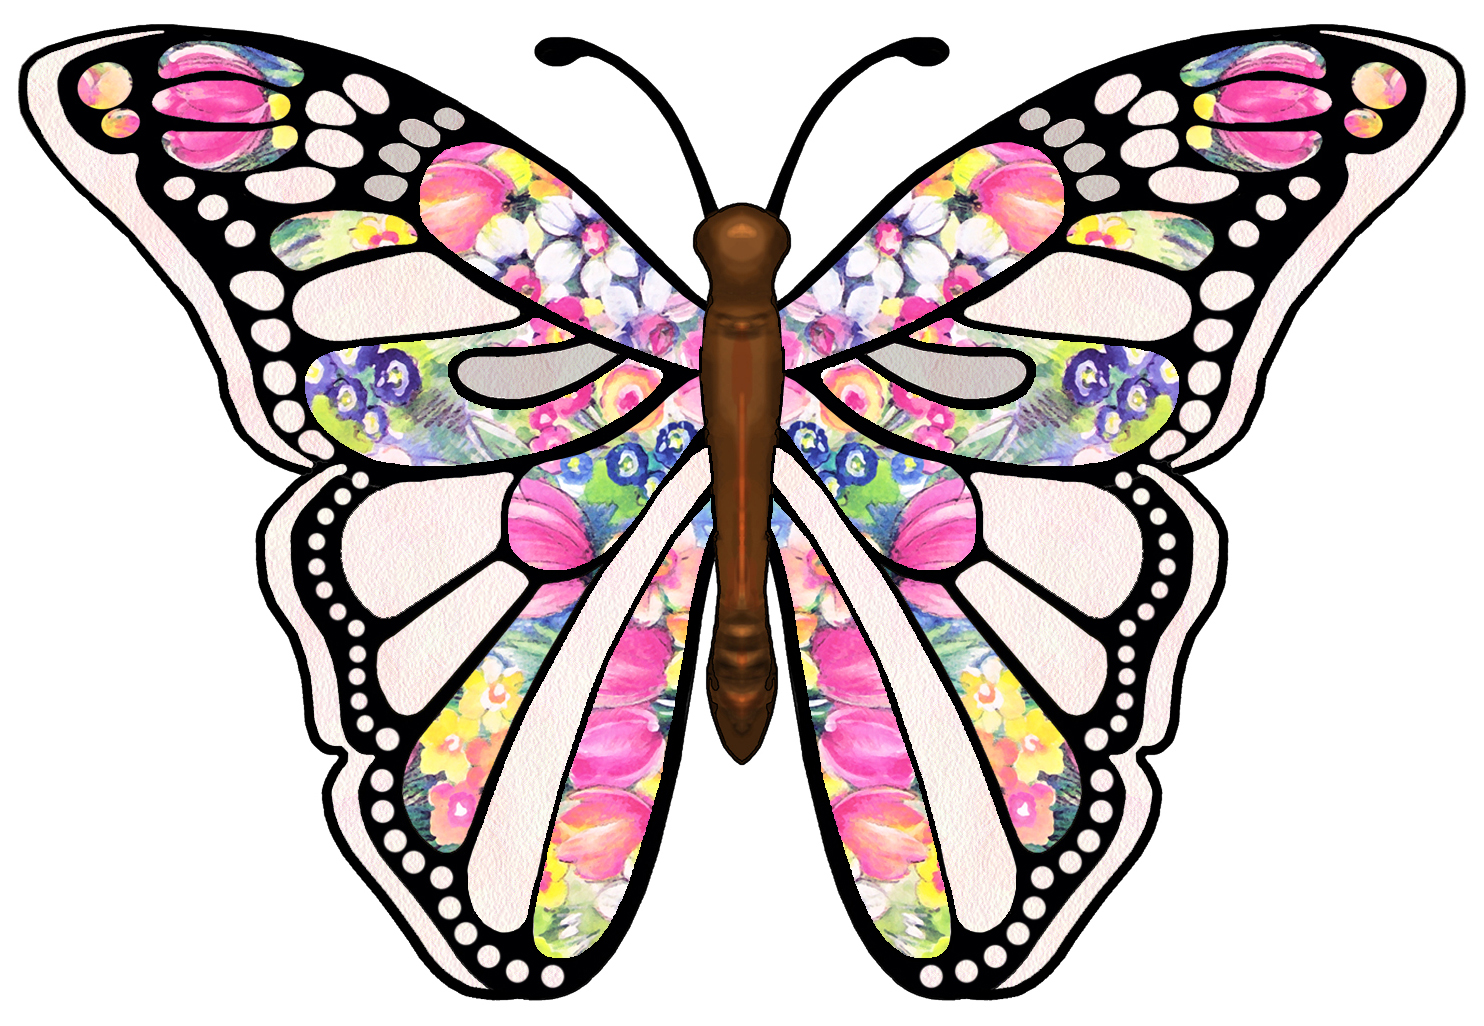 Butterfly clipart clipart panda free clipart images for Butterfly art and craft